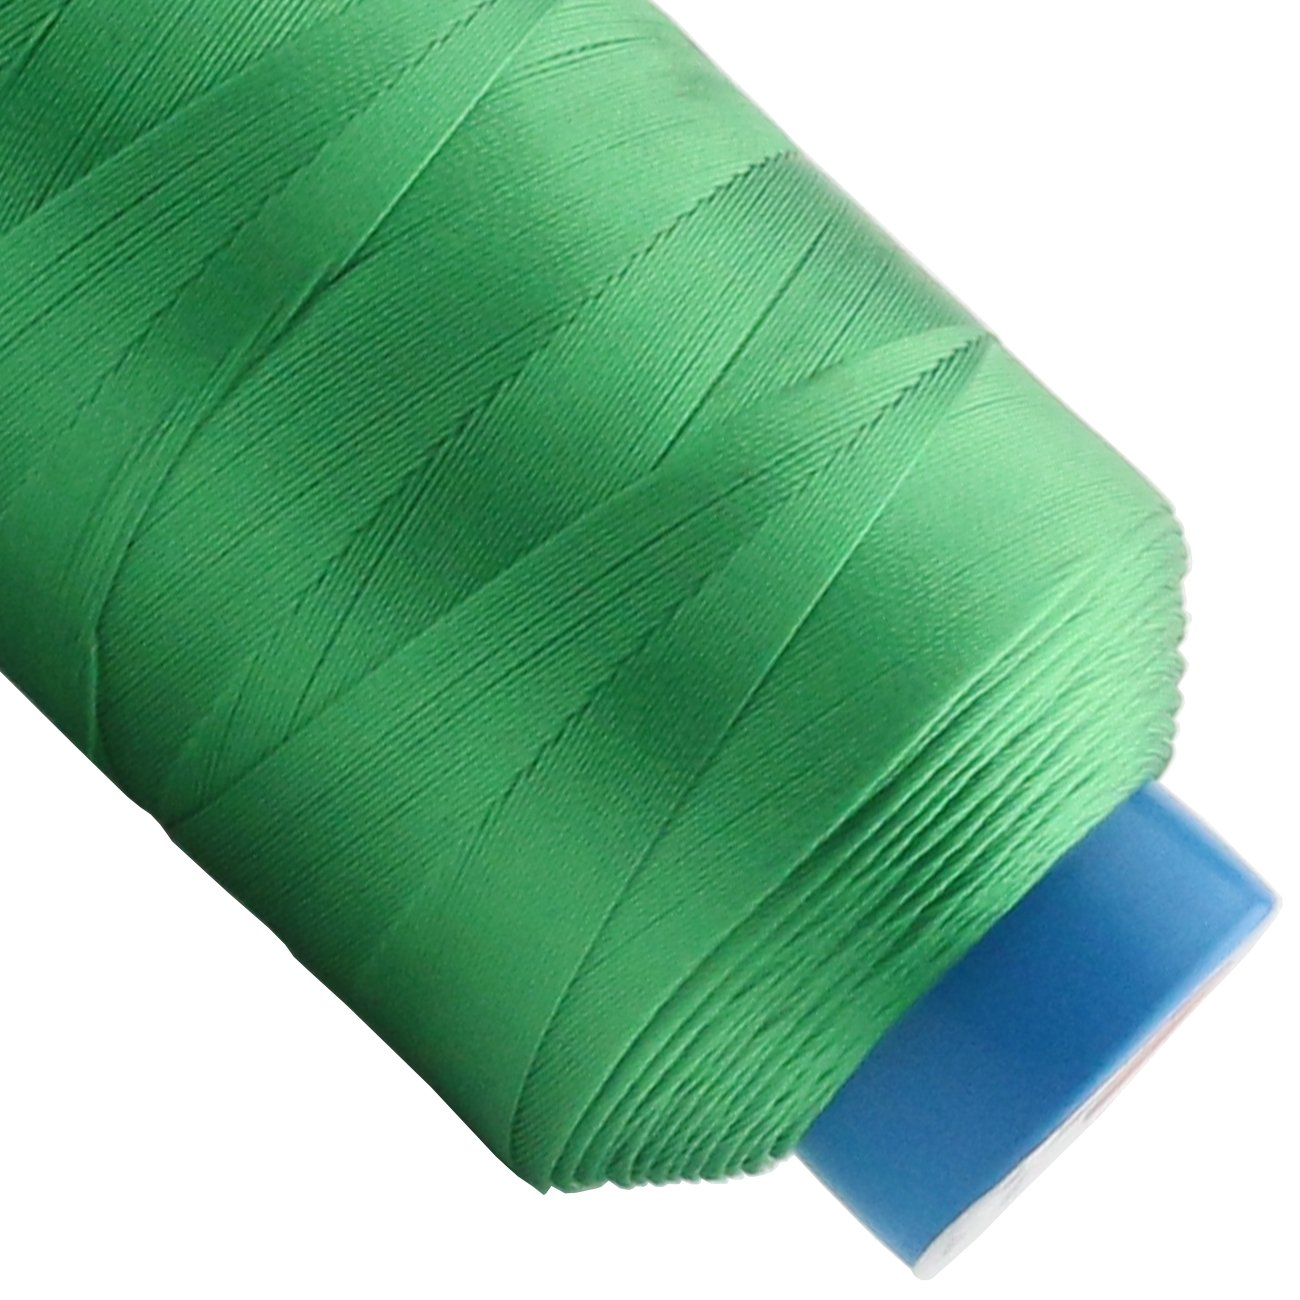 Ogrmar Green Bonded Nylon Sewing Thread 1500 Yard Size T70#69 Green